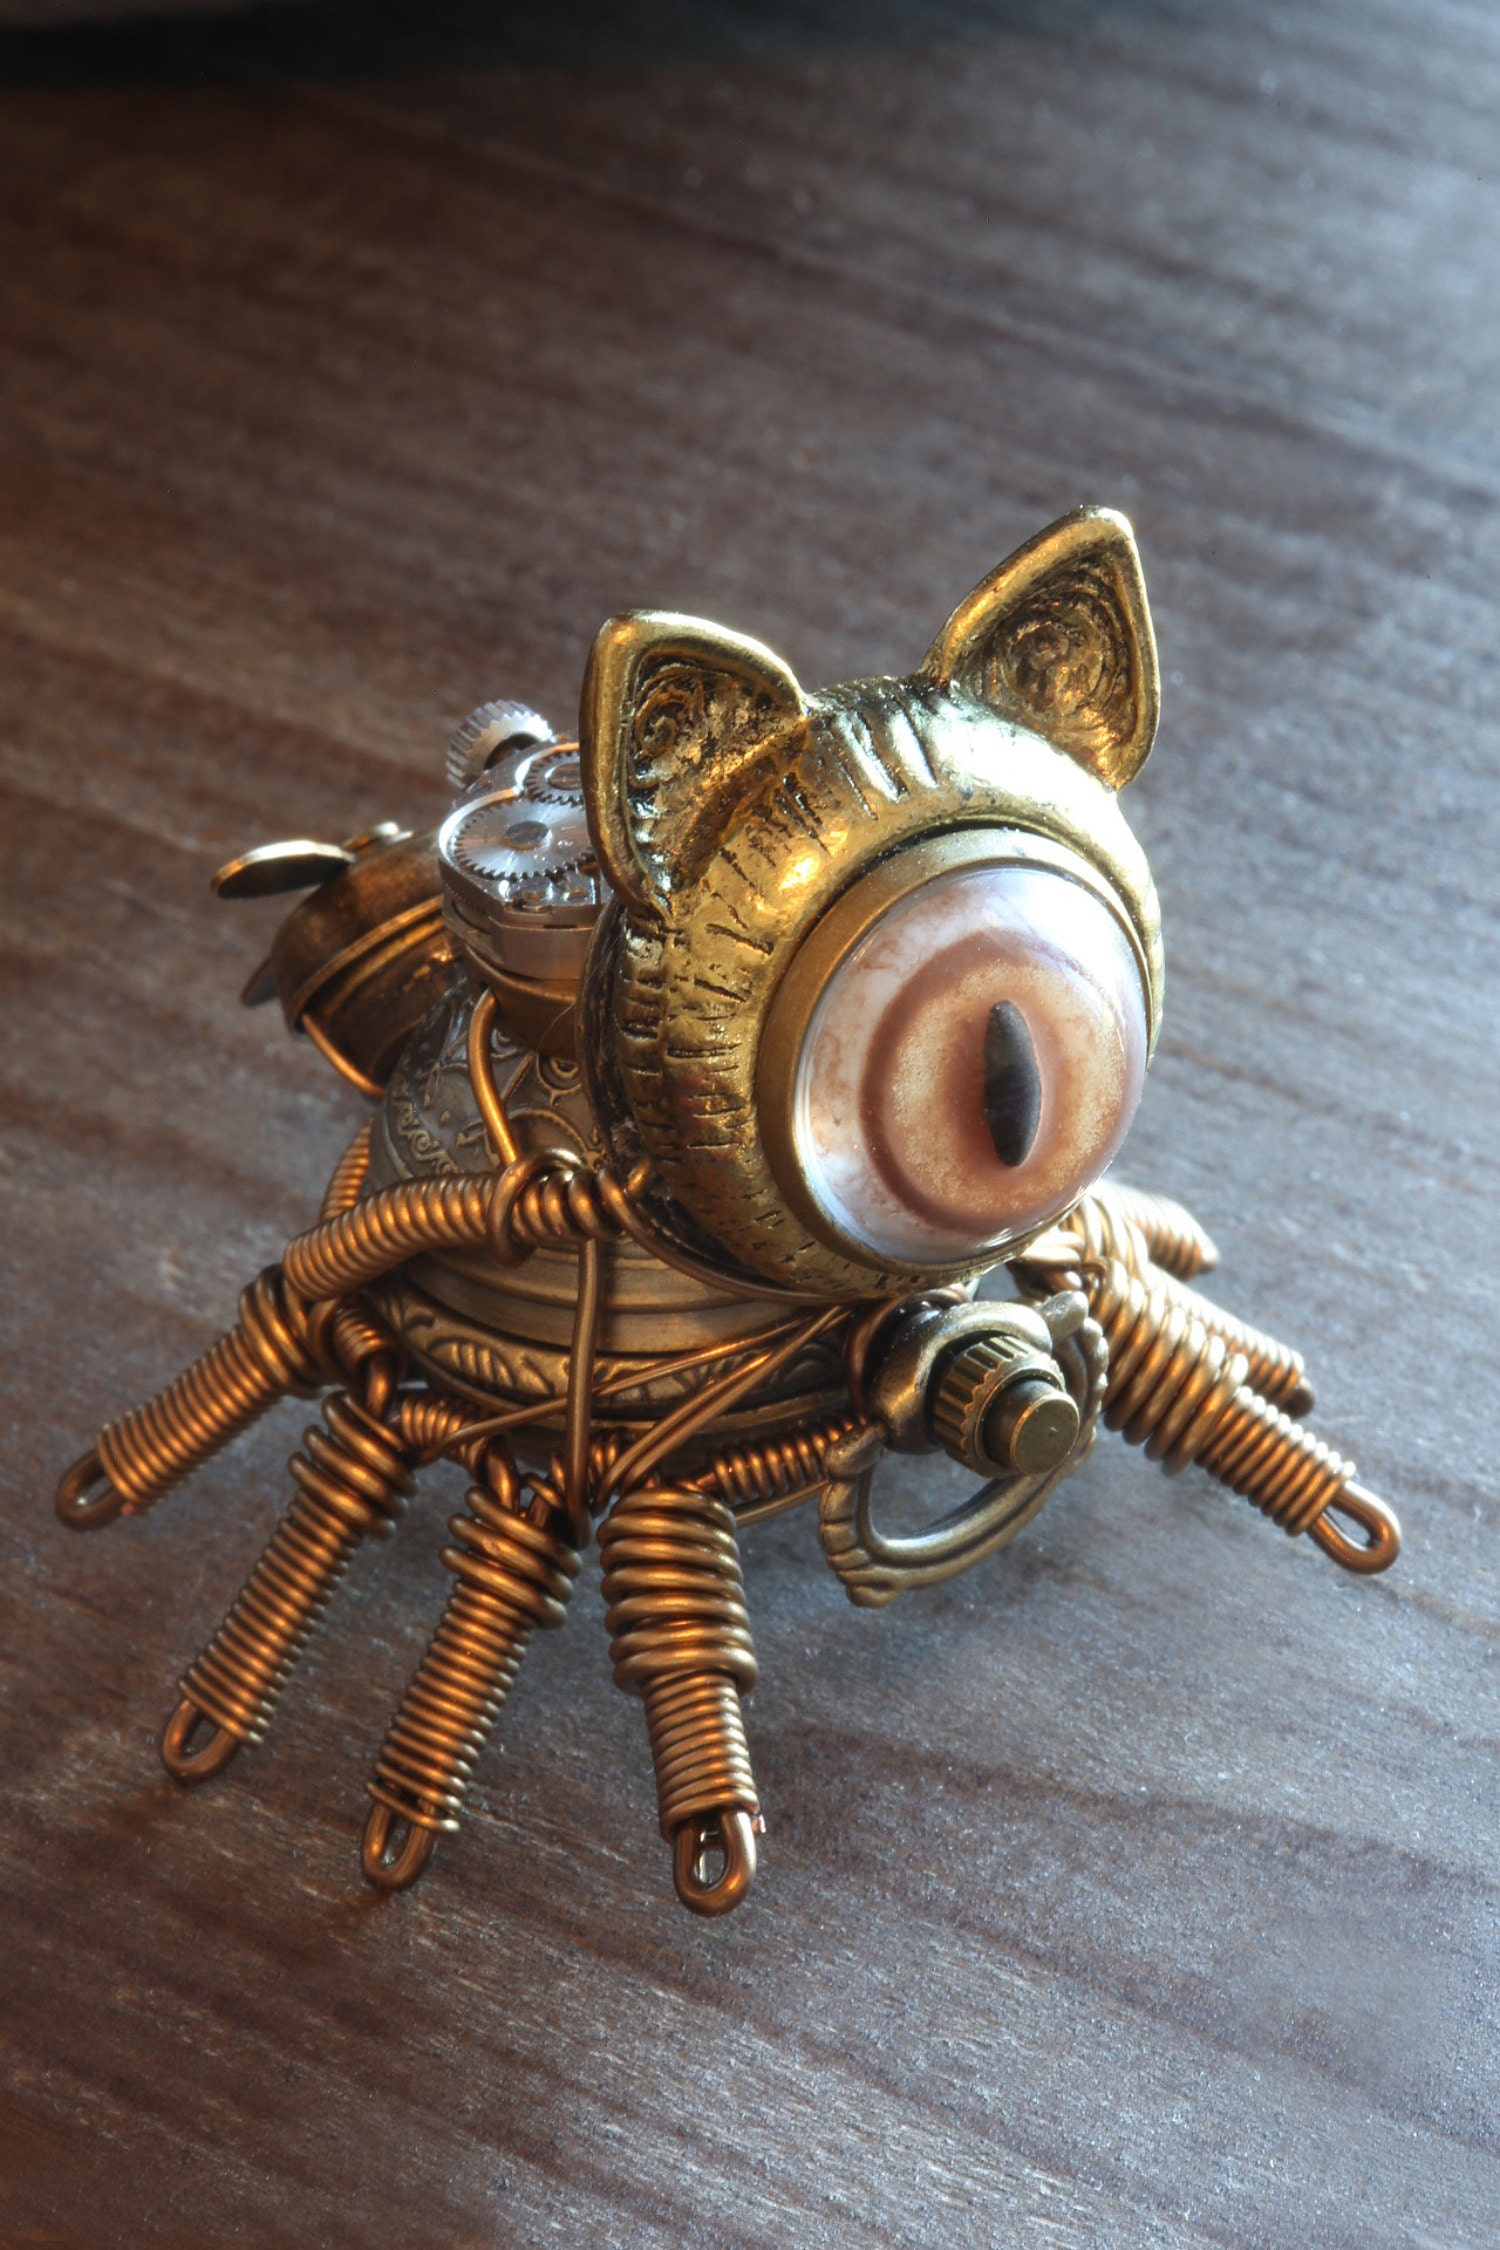 8 Legged Steampunk cat